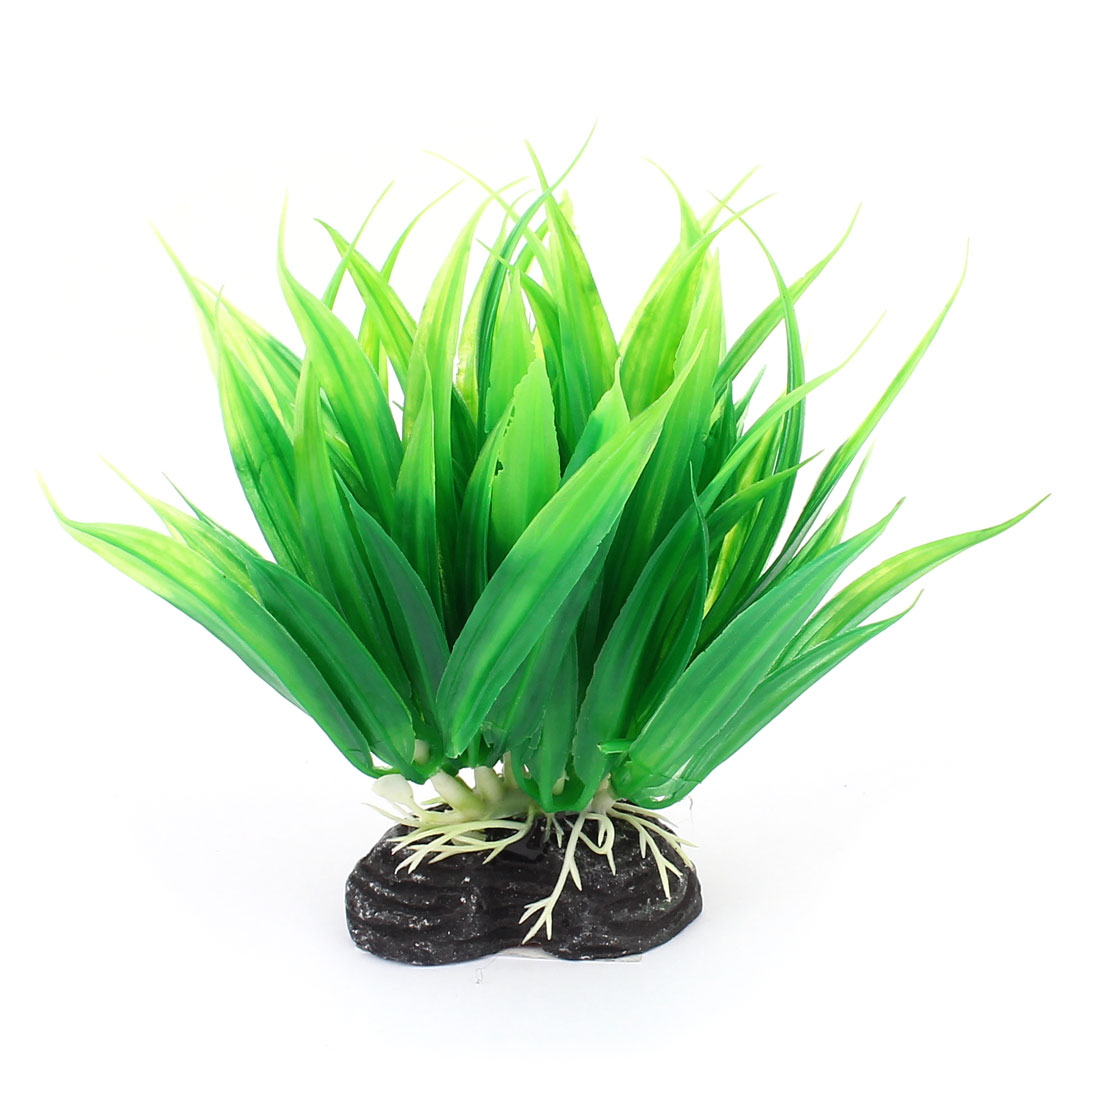 Aquarium Fish Tank Plastic Artificial Water Plant Grass Ornament Landscape Green